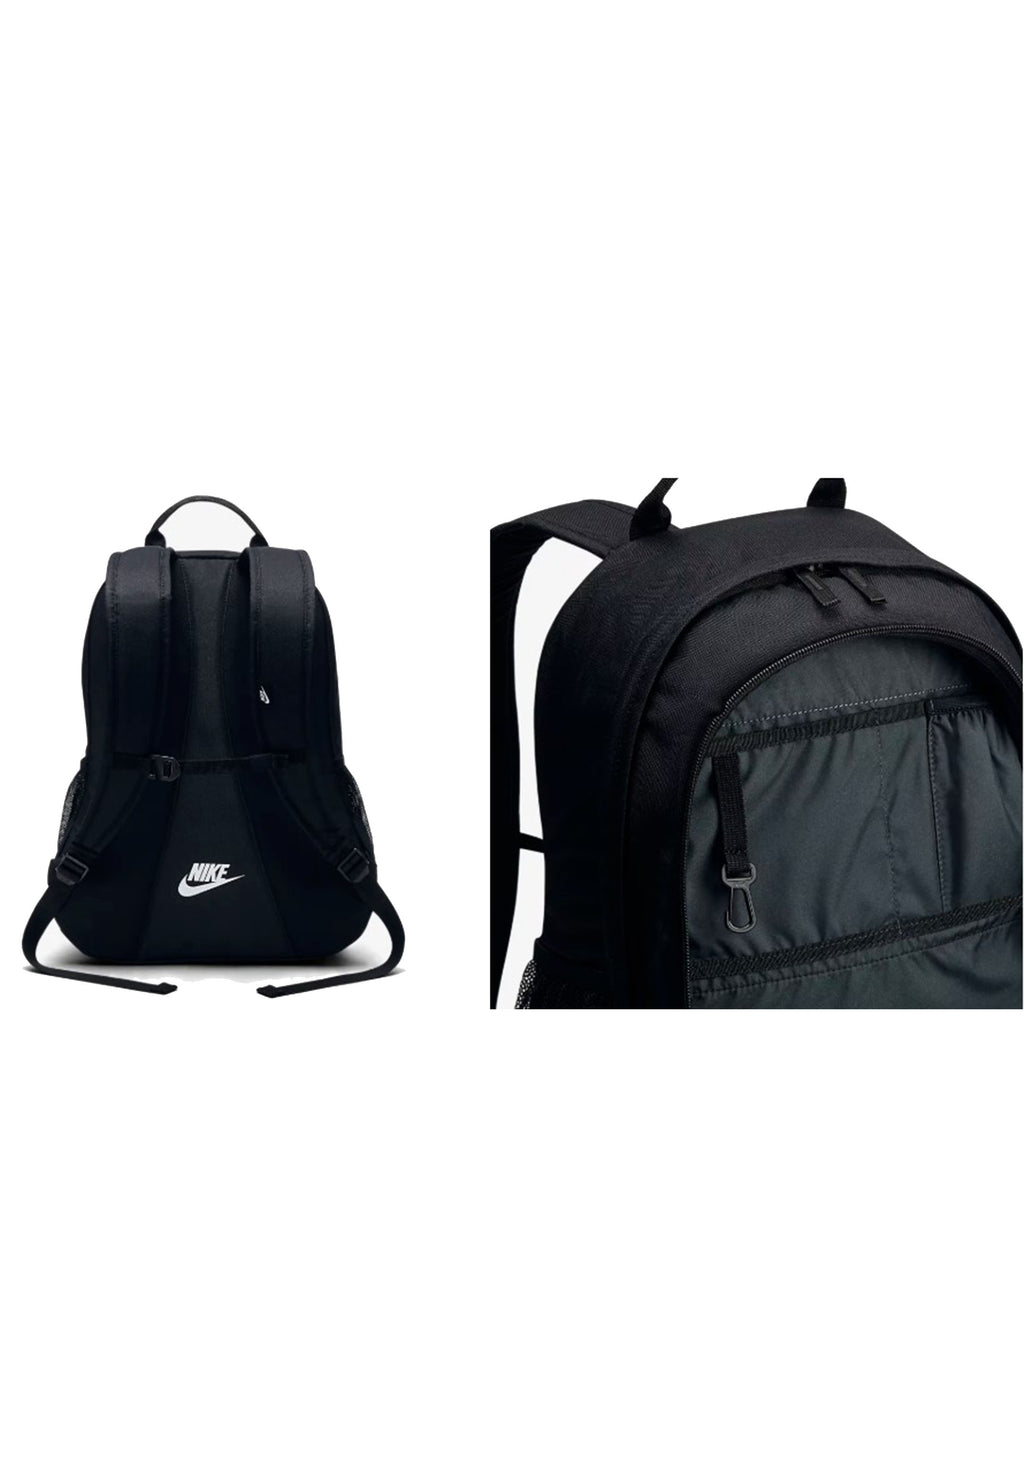 NIKE HAYWARD FUTURA 2.0 BACKPACK BLACK/WHITE <BR> BA5217-010